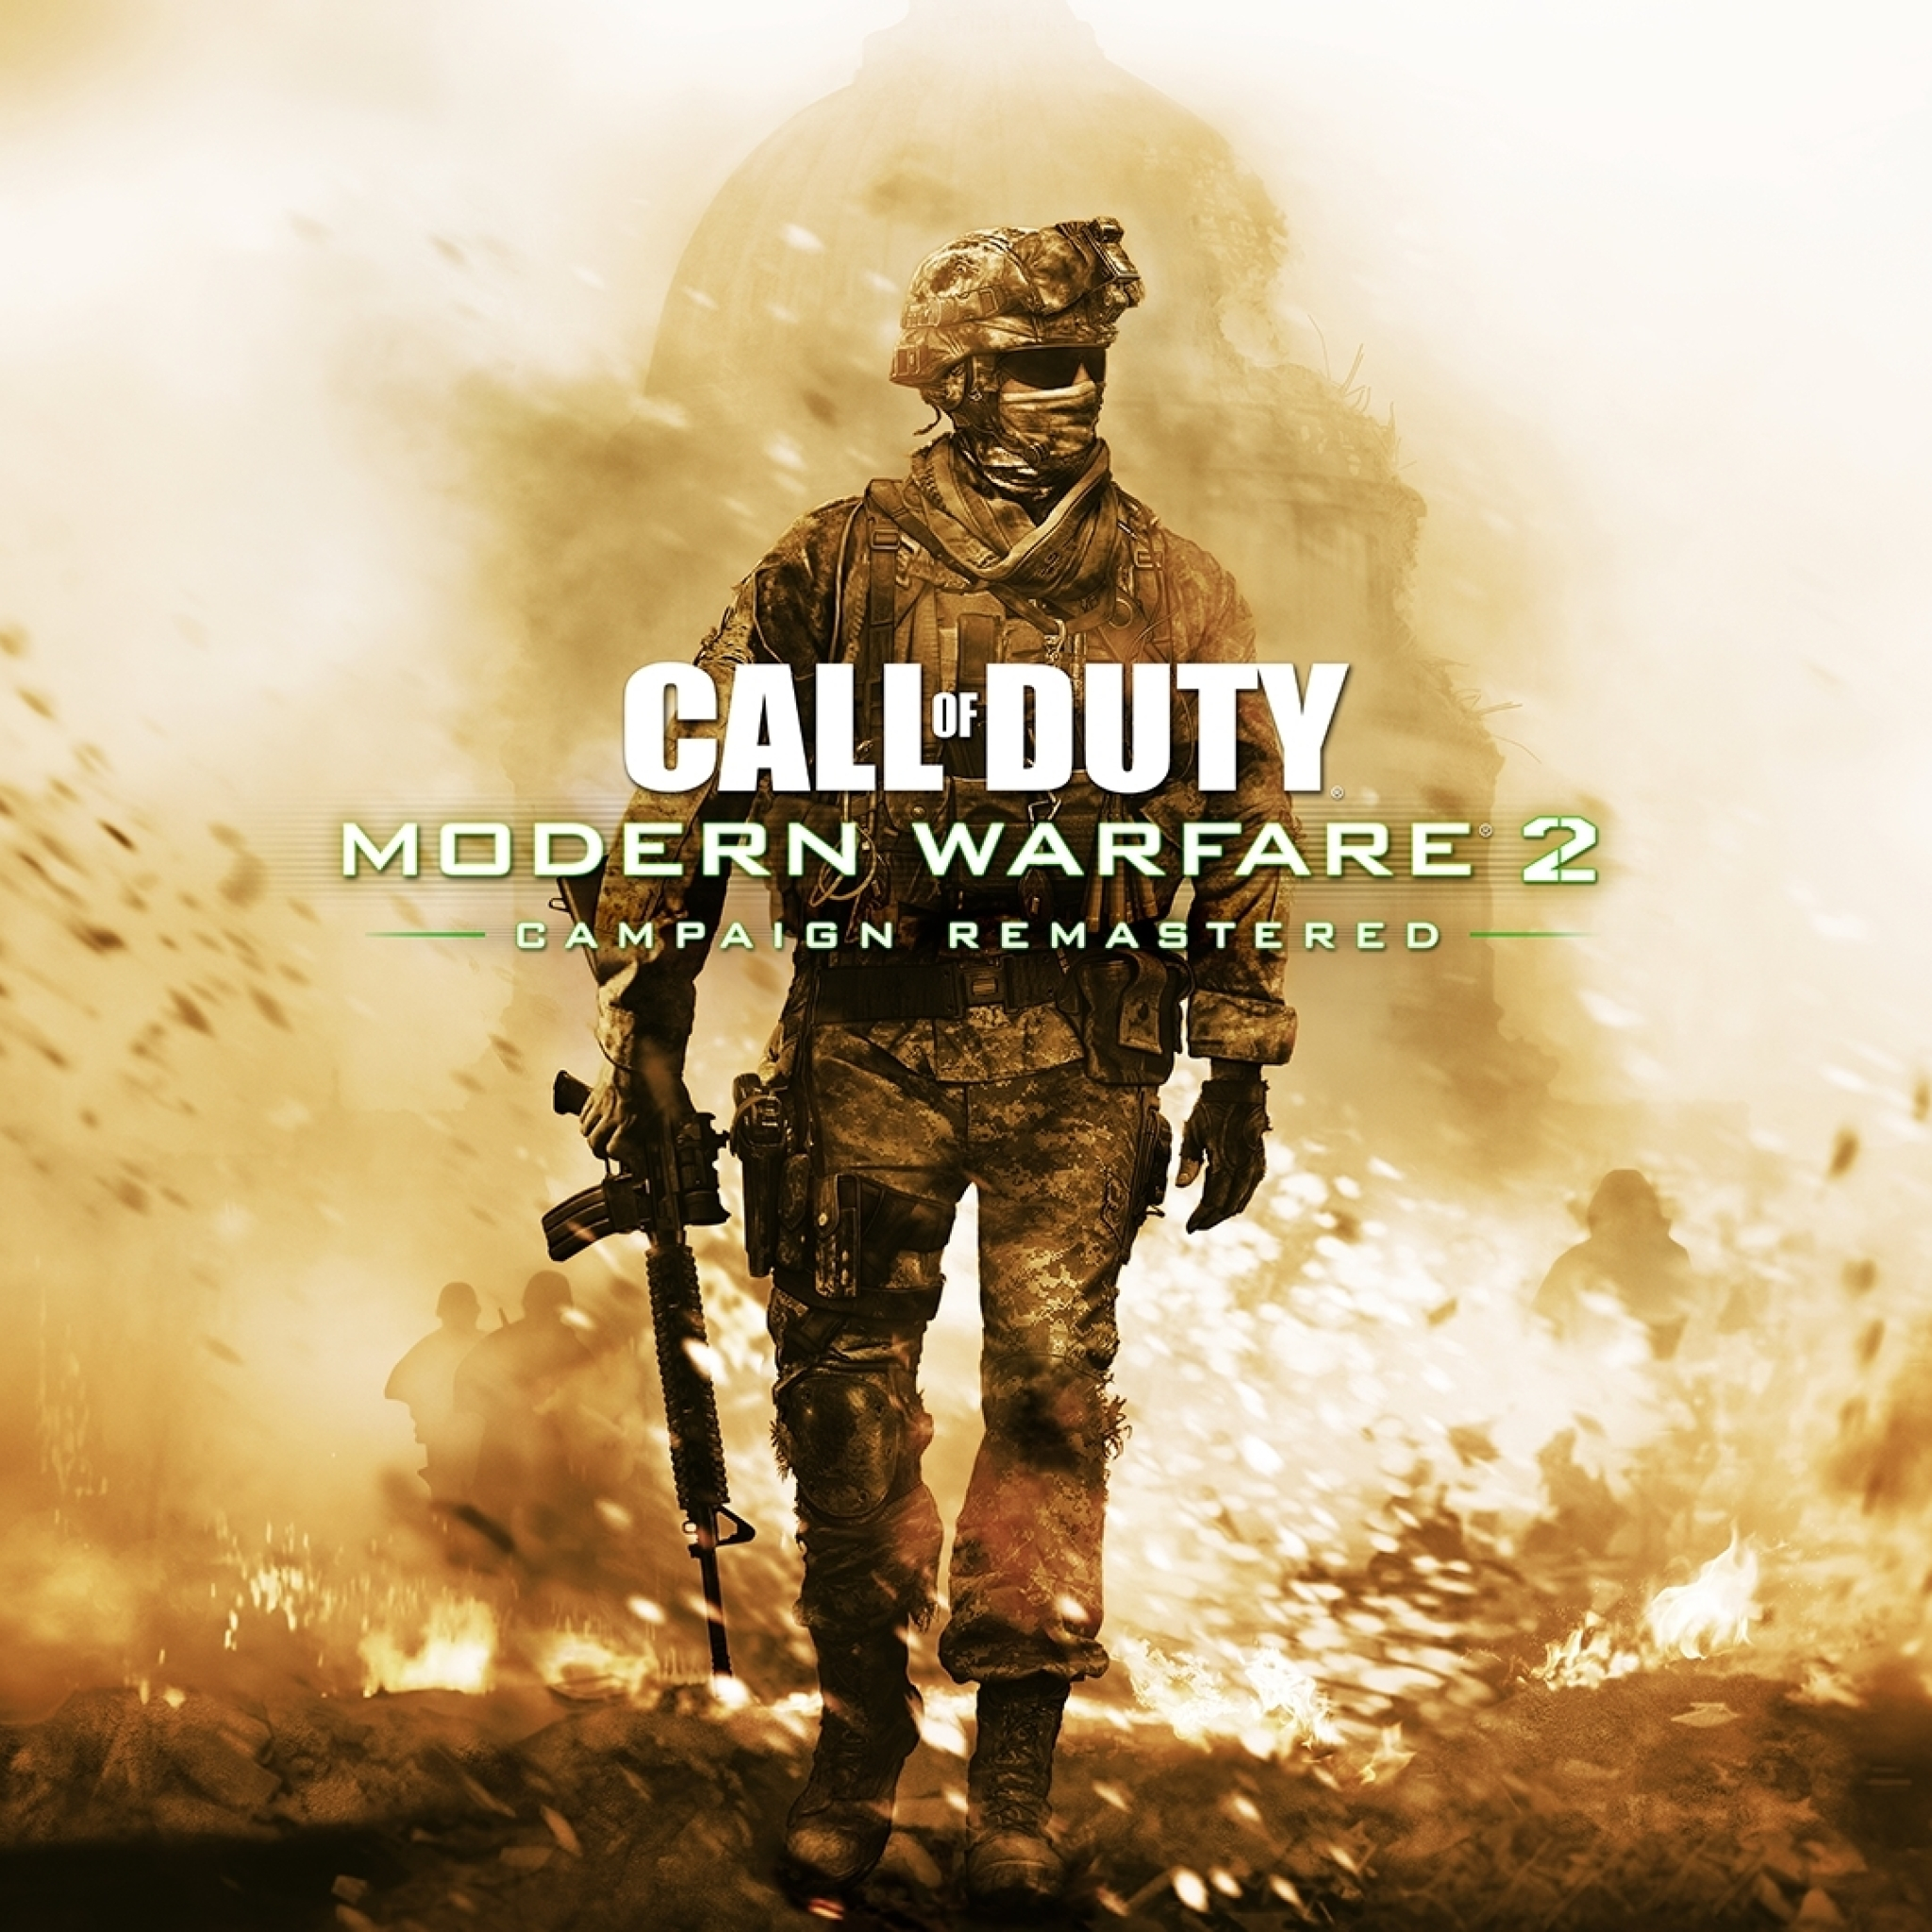 call of duty modern warfare 2 campaign remastered a25uZm2UmZqaraWkpJRnZWltrWdlaW0